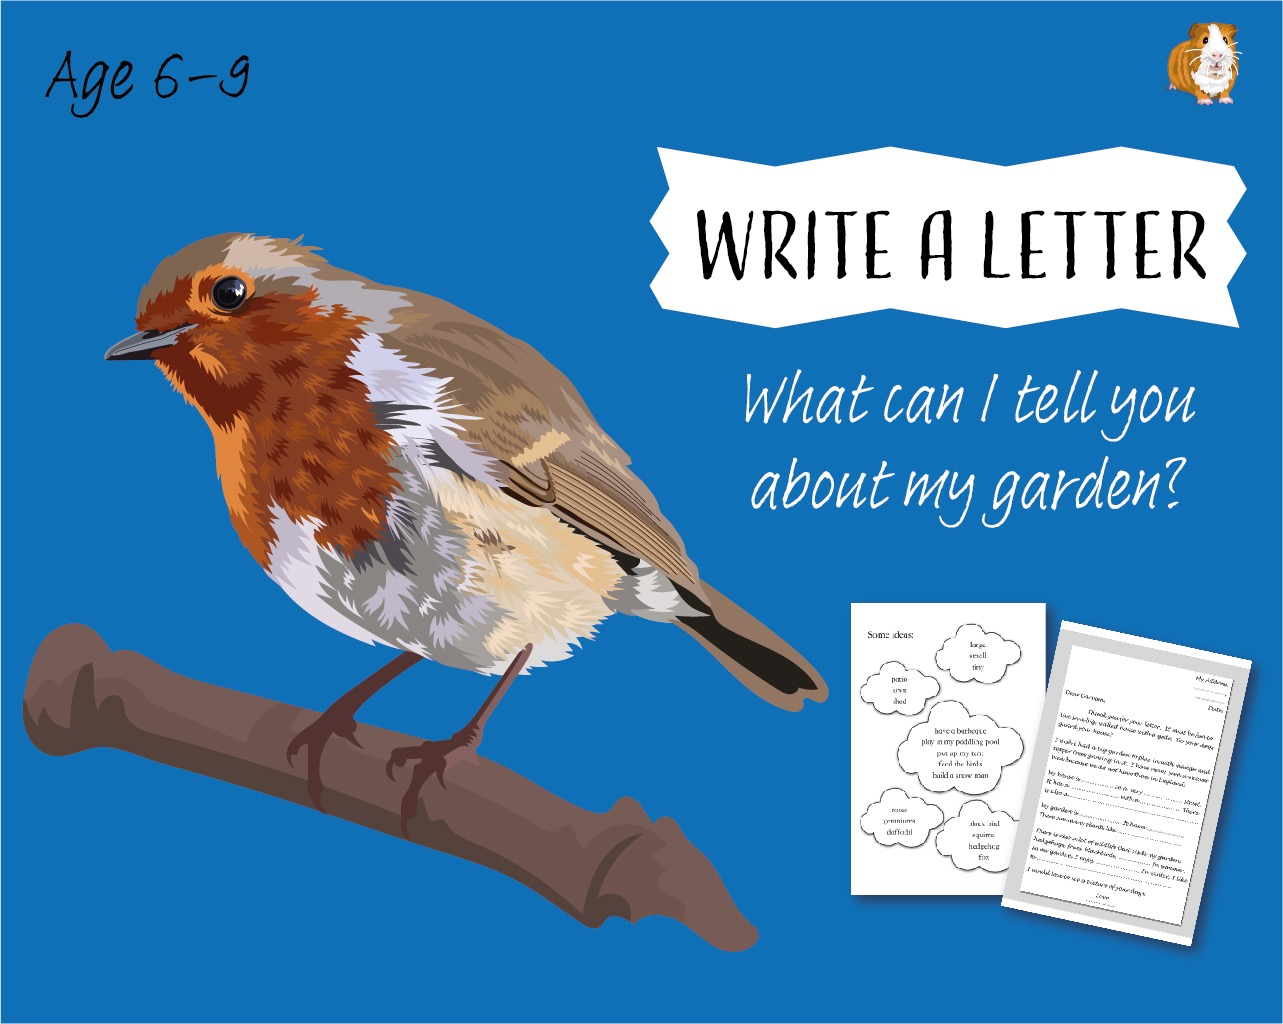 Write A Letter: What Can I Tell You About My Garden? (6-9 years)